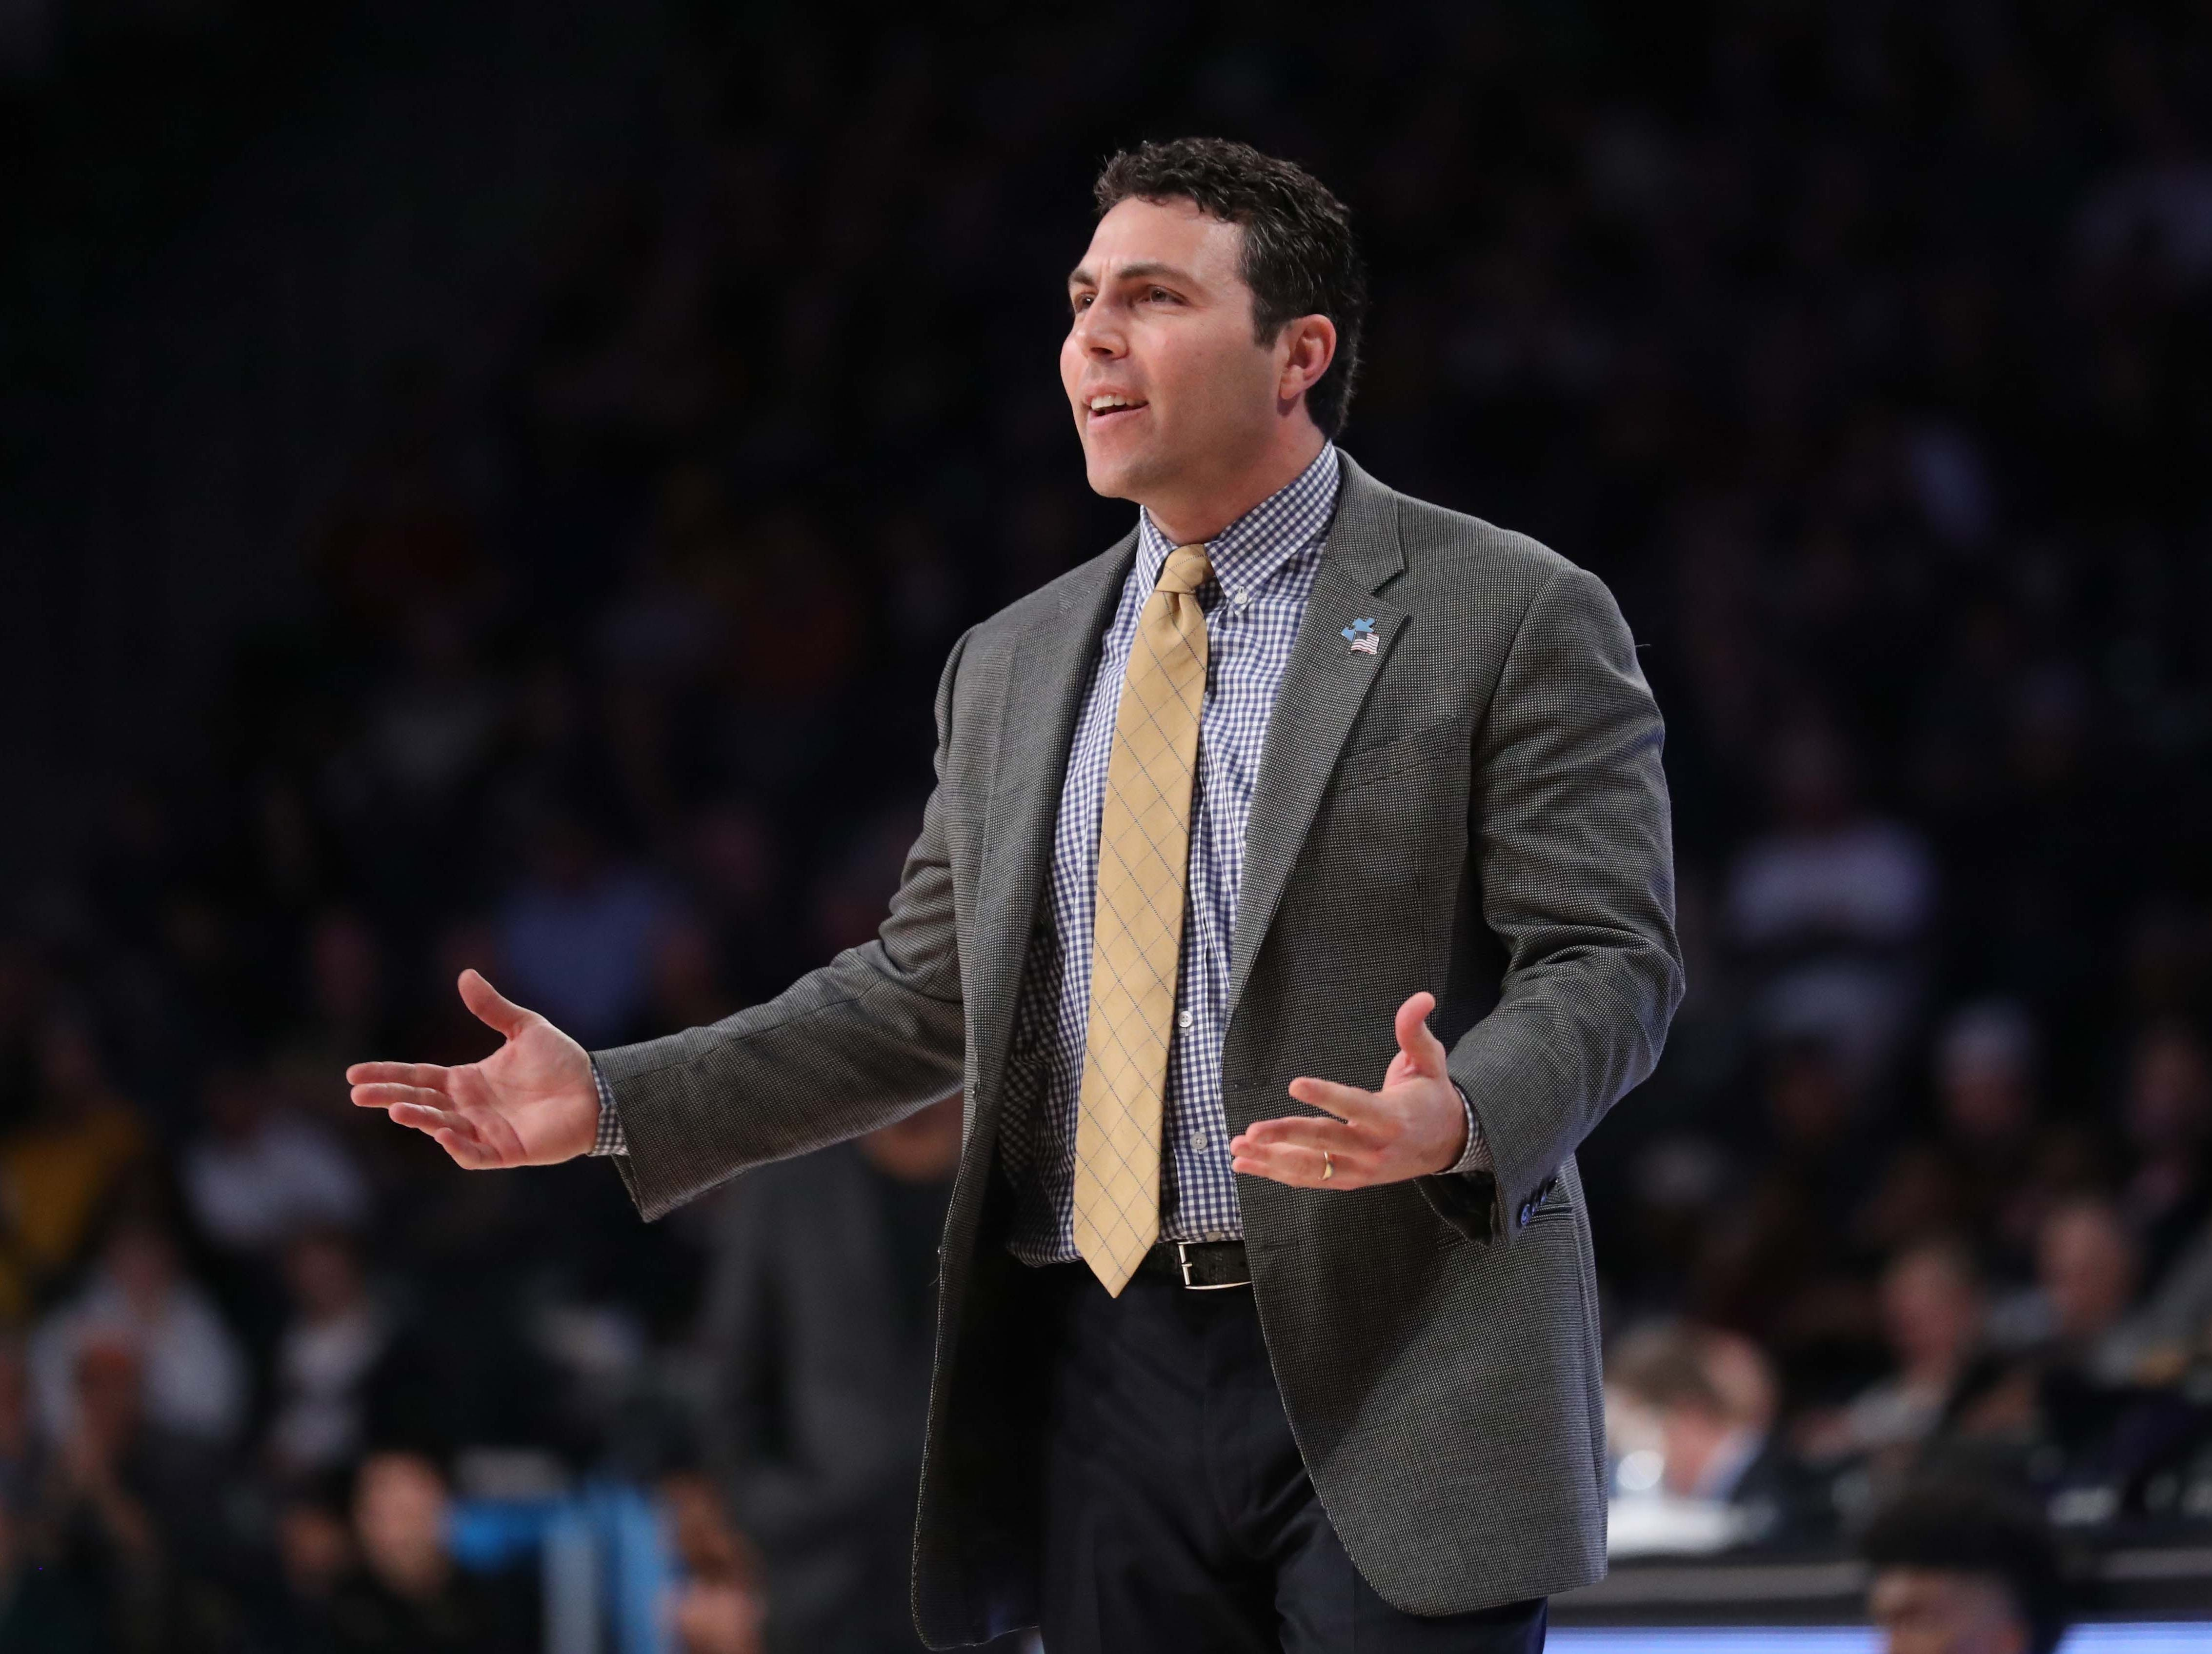 Feb 16, 2019; Atlanta, GA, USA; Georgia Tech Yellow Jackets head coach Josh Pastner reacts to a play during the first half against the Florida State Seminoles at McCamish Pavilion. Mandatory Credit: Jason Getz-USA TODAY Sports